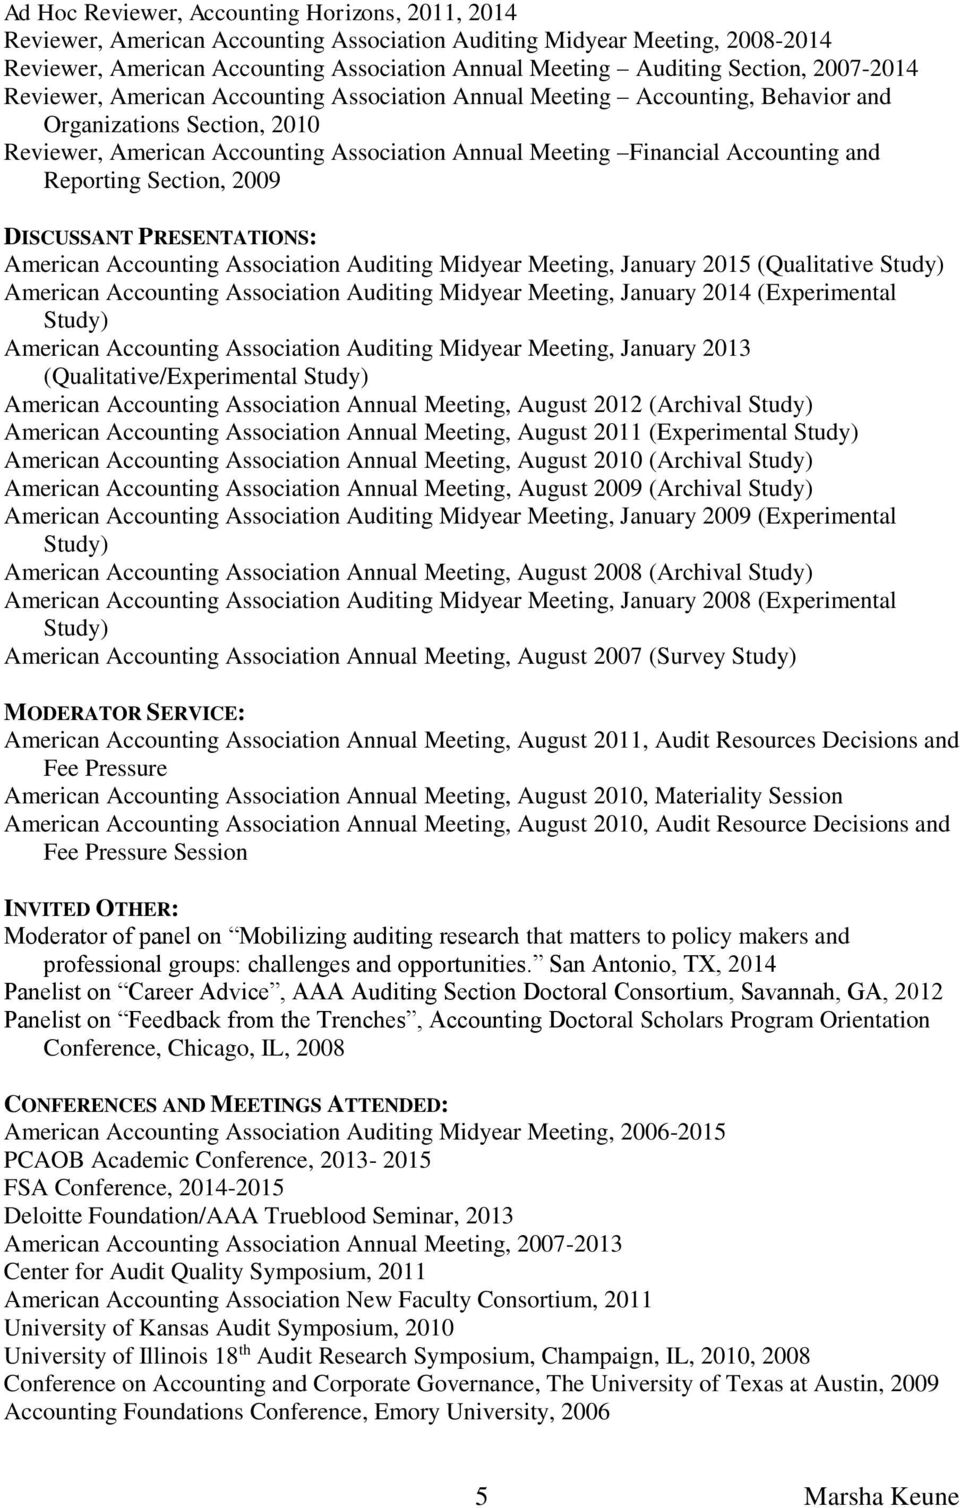 Accounting and Reporting Section, 2009 DISCUSSANT PRESENTATIONS: American Accounting Association Auditing Midyear Meeting, January 2015 (Qualitative Study) American Accounting Association Auditing